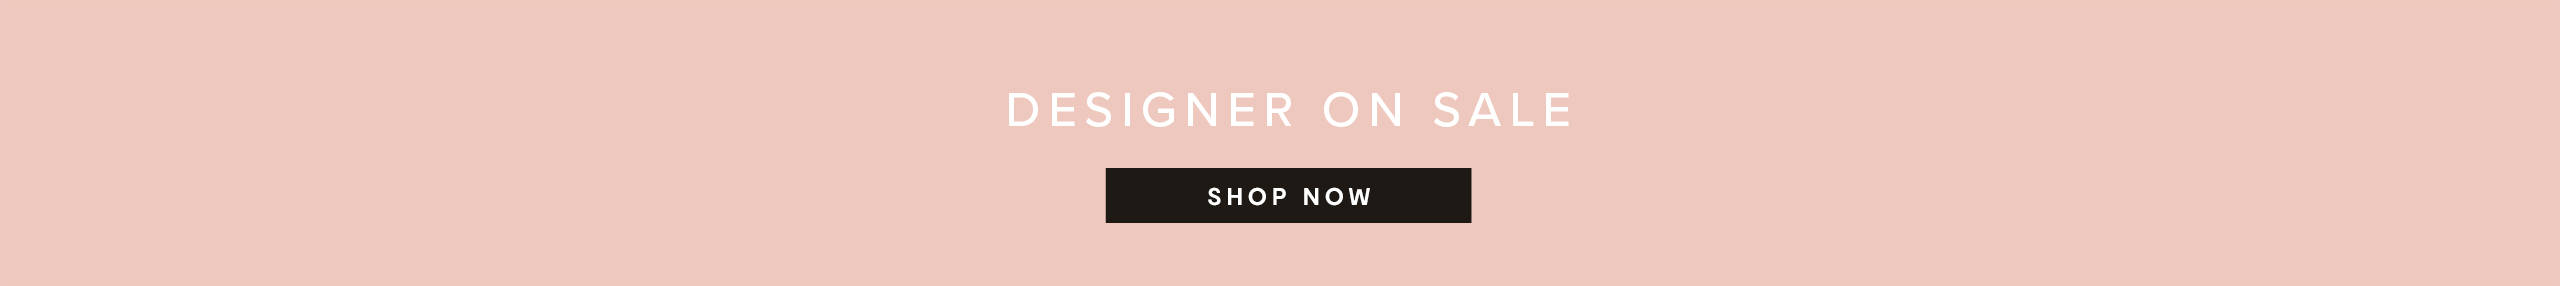 Designer on Sale